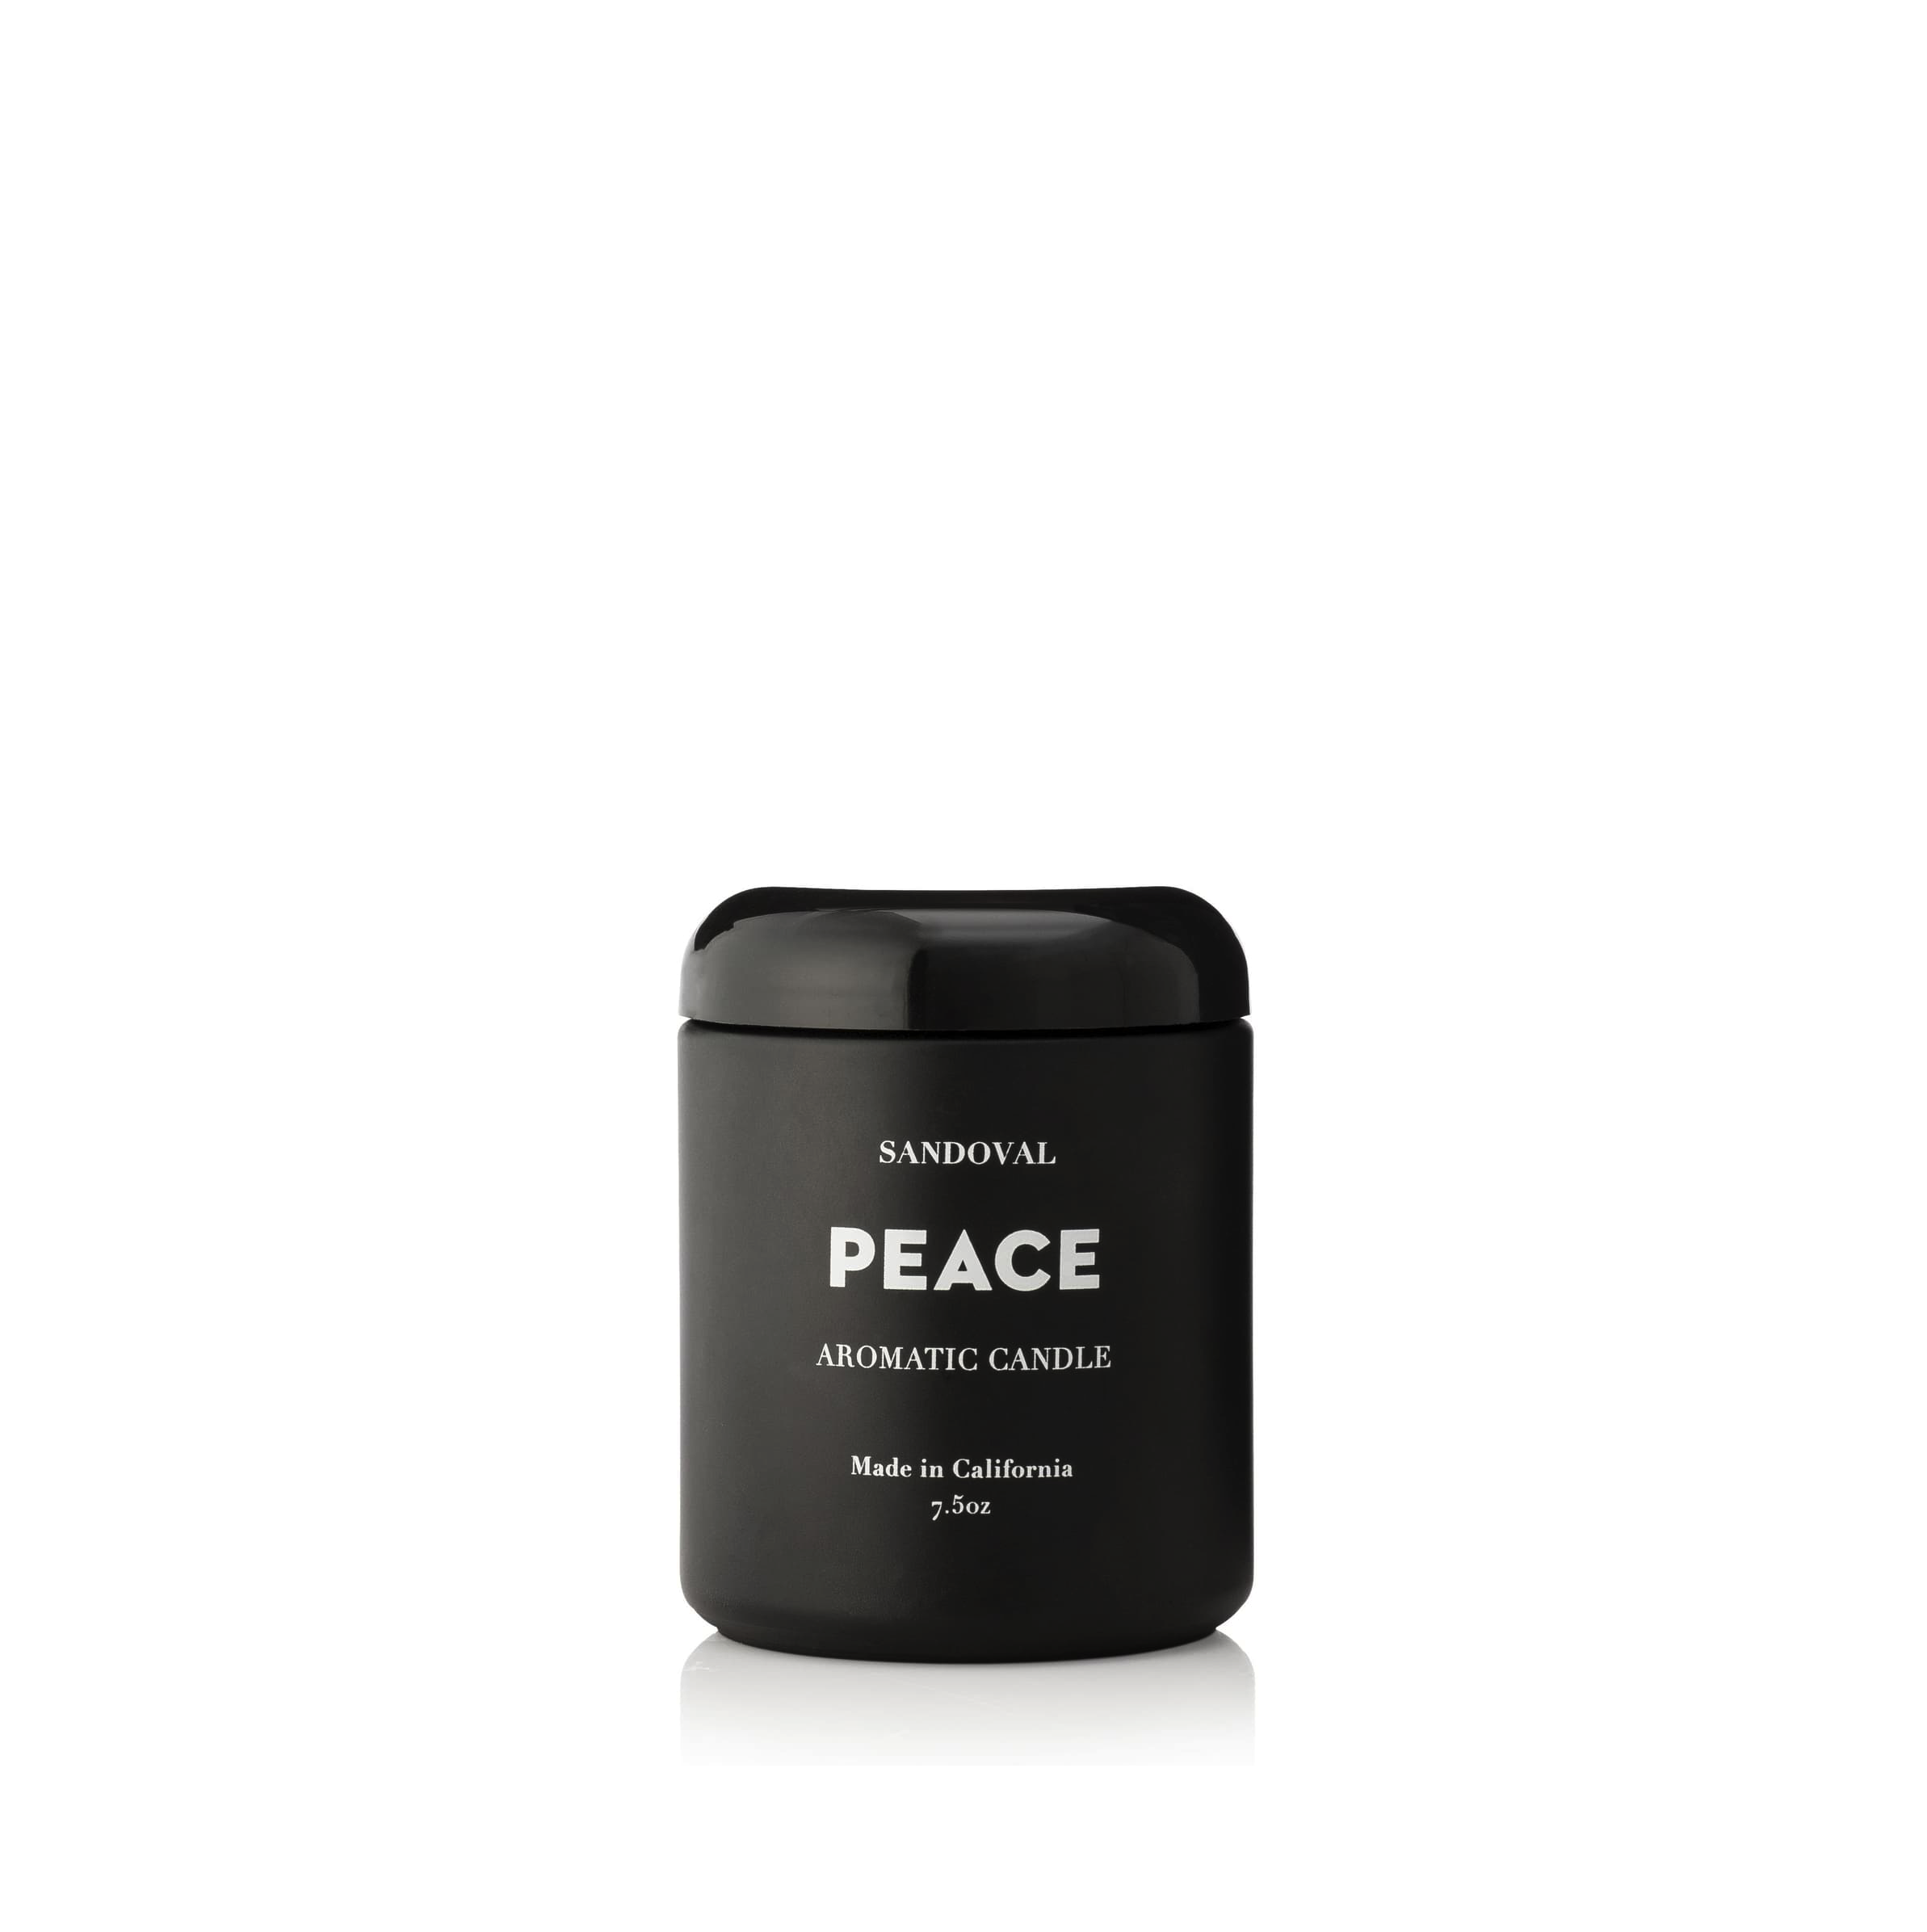 Peace Aromatic Candle